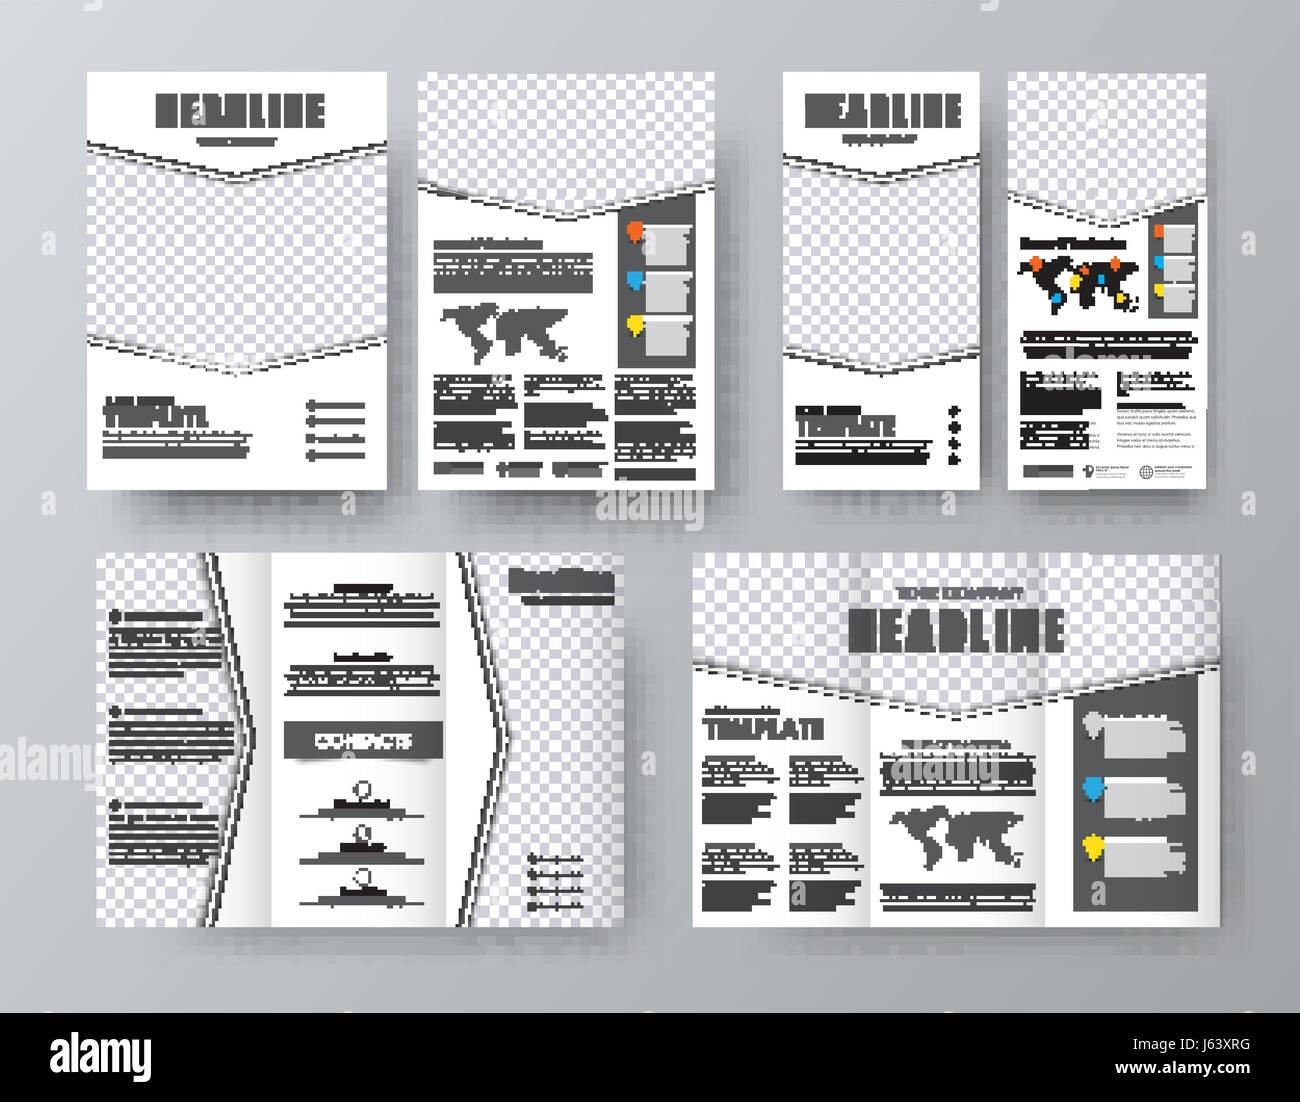 design triple brochure flyer format a4 and a narrow banner with an